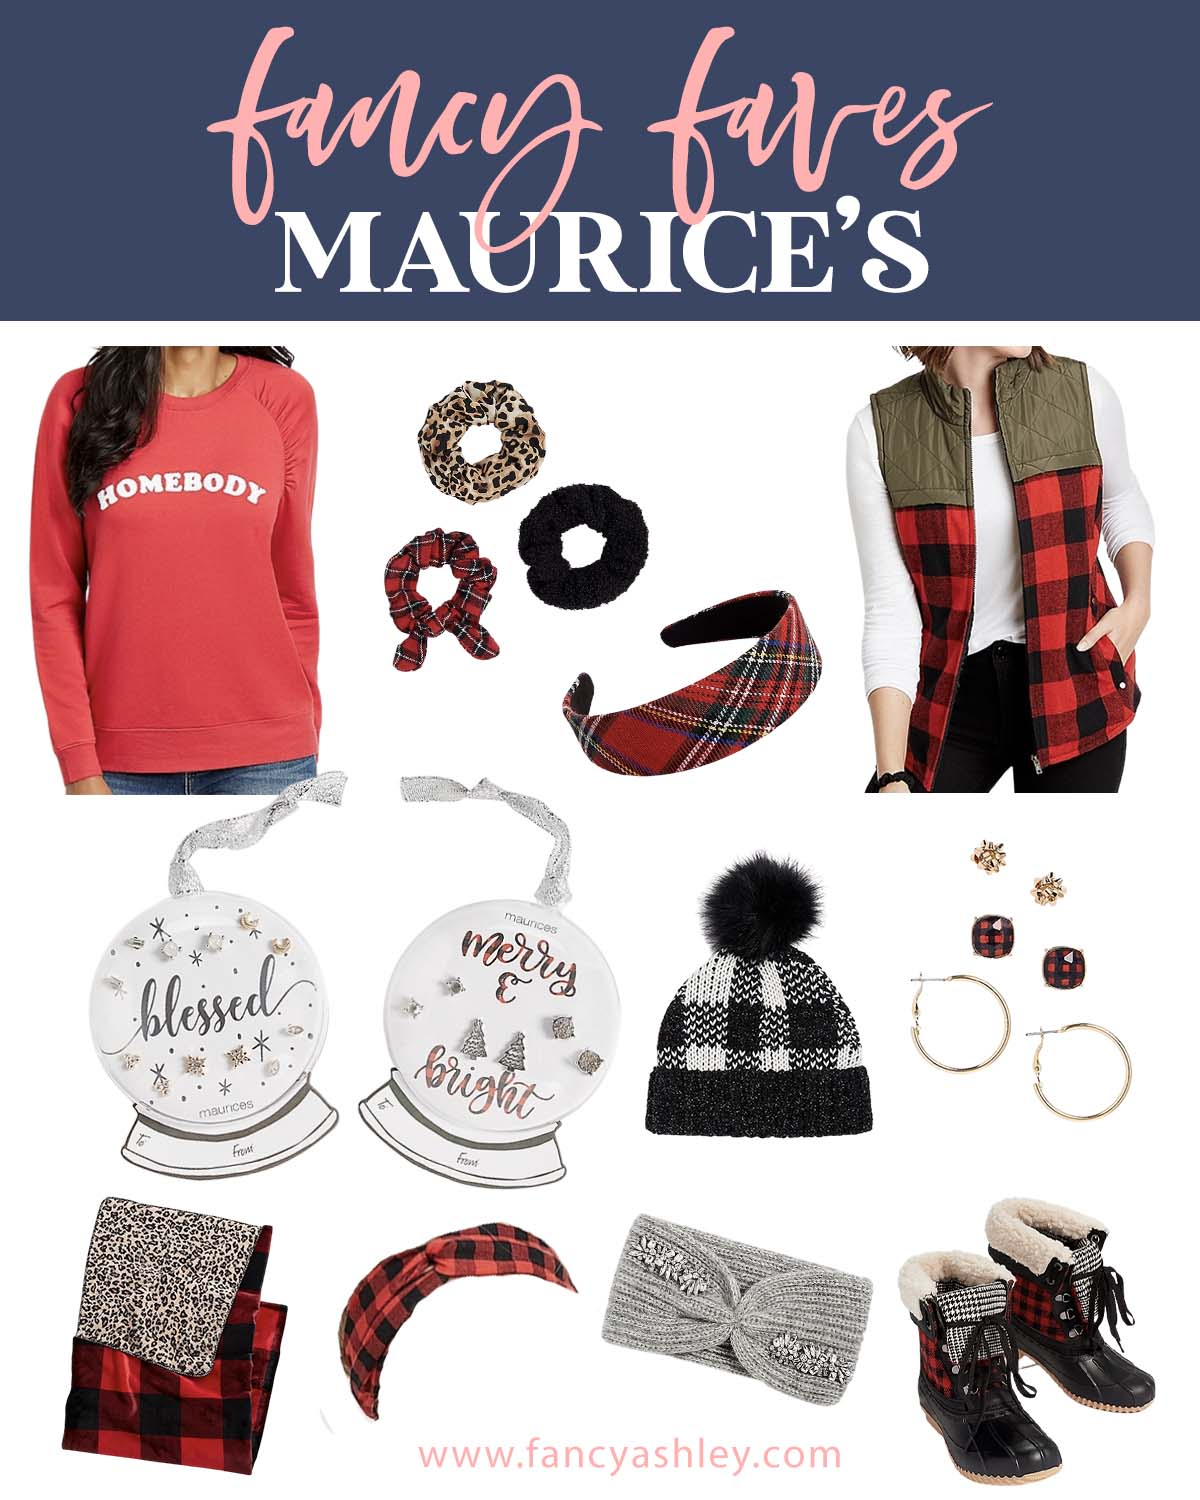 Maurice's Clothing by popular Houston fashion blog, Fancy Ashley: collage image of Maurice's homebody sweatshirt, plaid vest, plaid headband, plaid scunchie, leopard print scrunchie, black velvet scrunchie, blessed and merry and bright gift tags, buffalo check knot headband, grey knit headband, plaid duck boots, black and white buffalo check pom beanie, plaid and leopard print blanket, gold hoop earrings, and gold stud earrings.